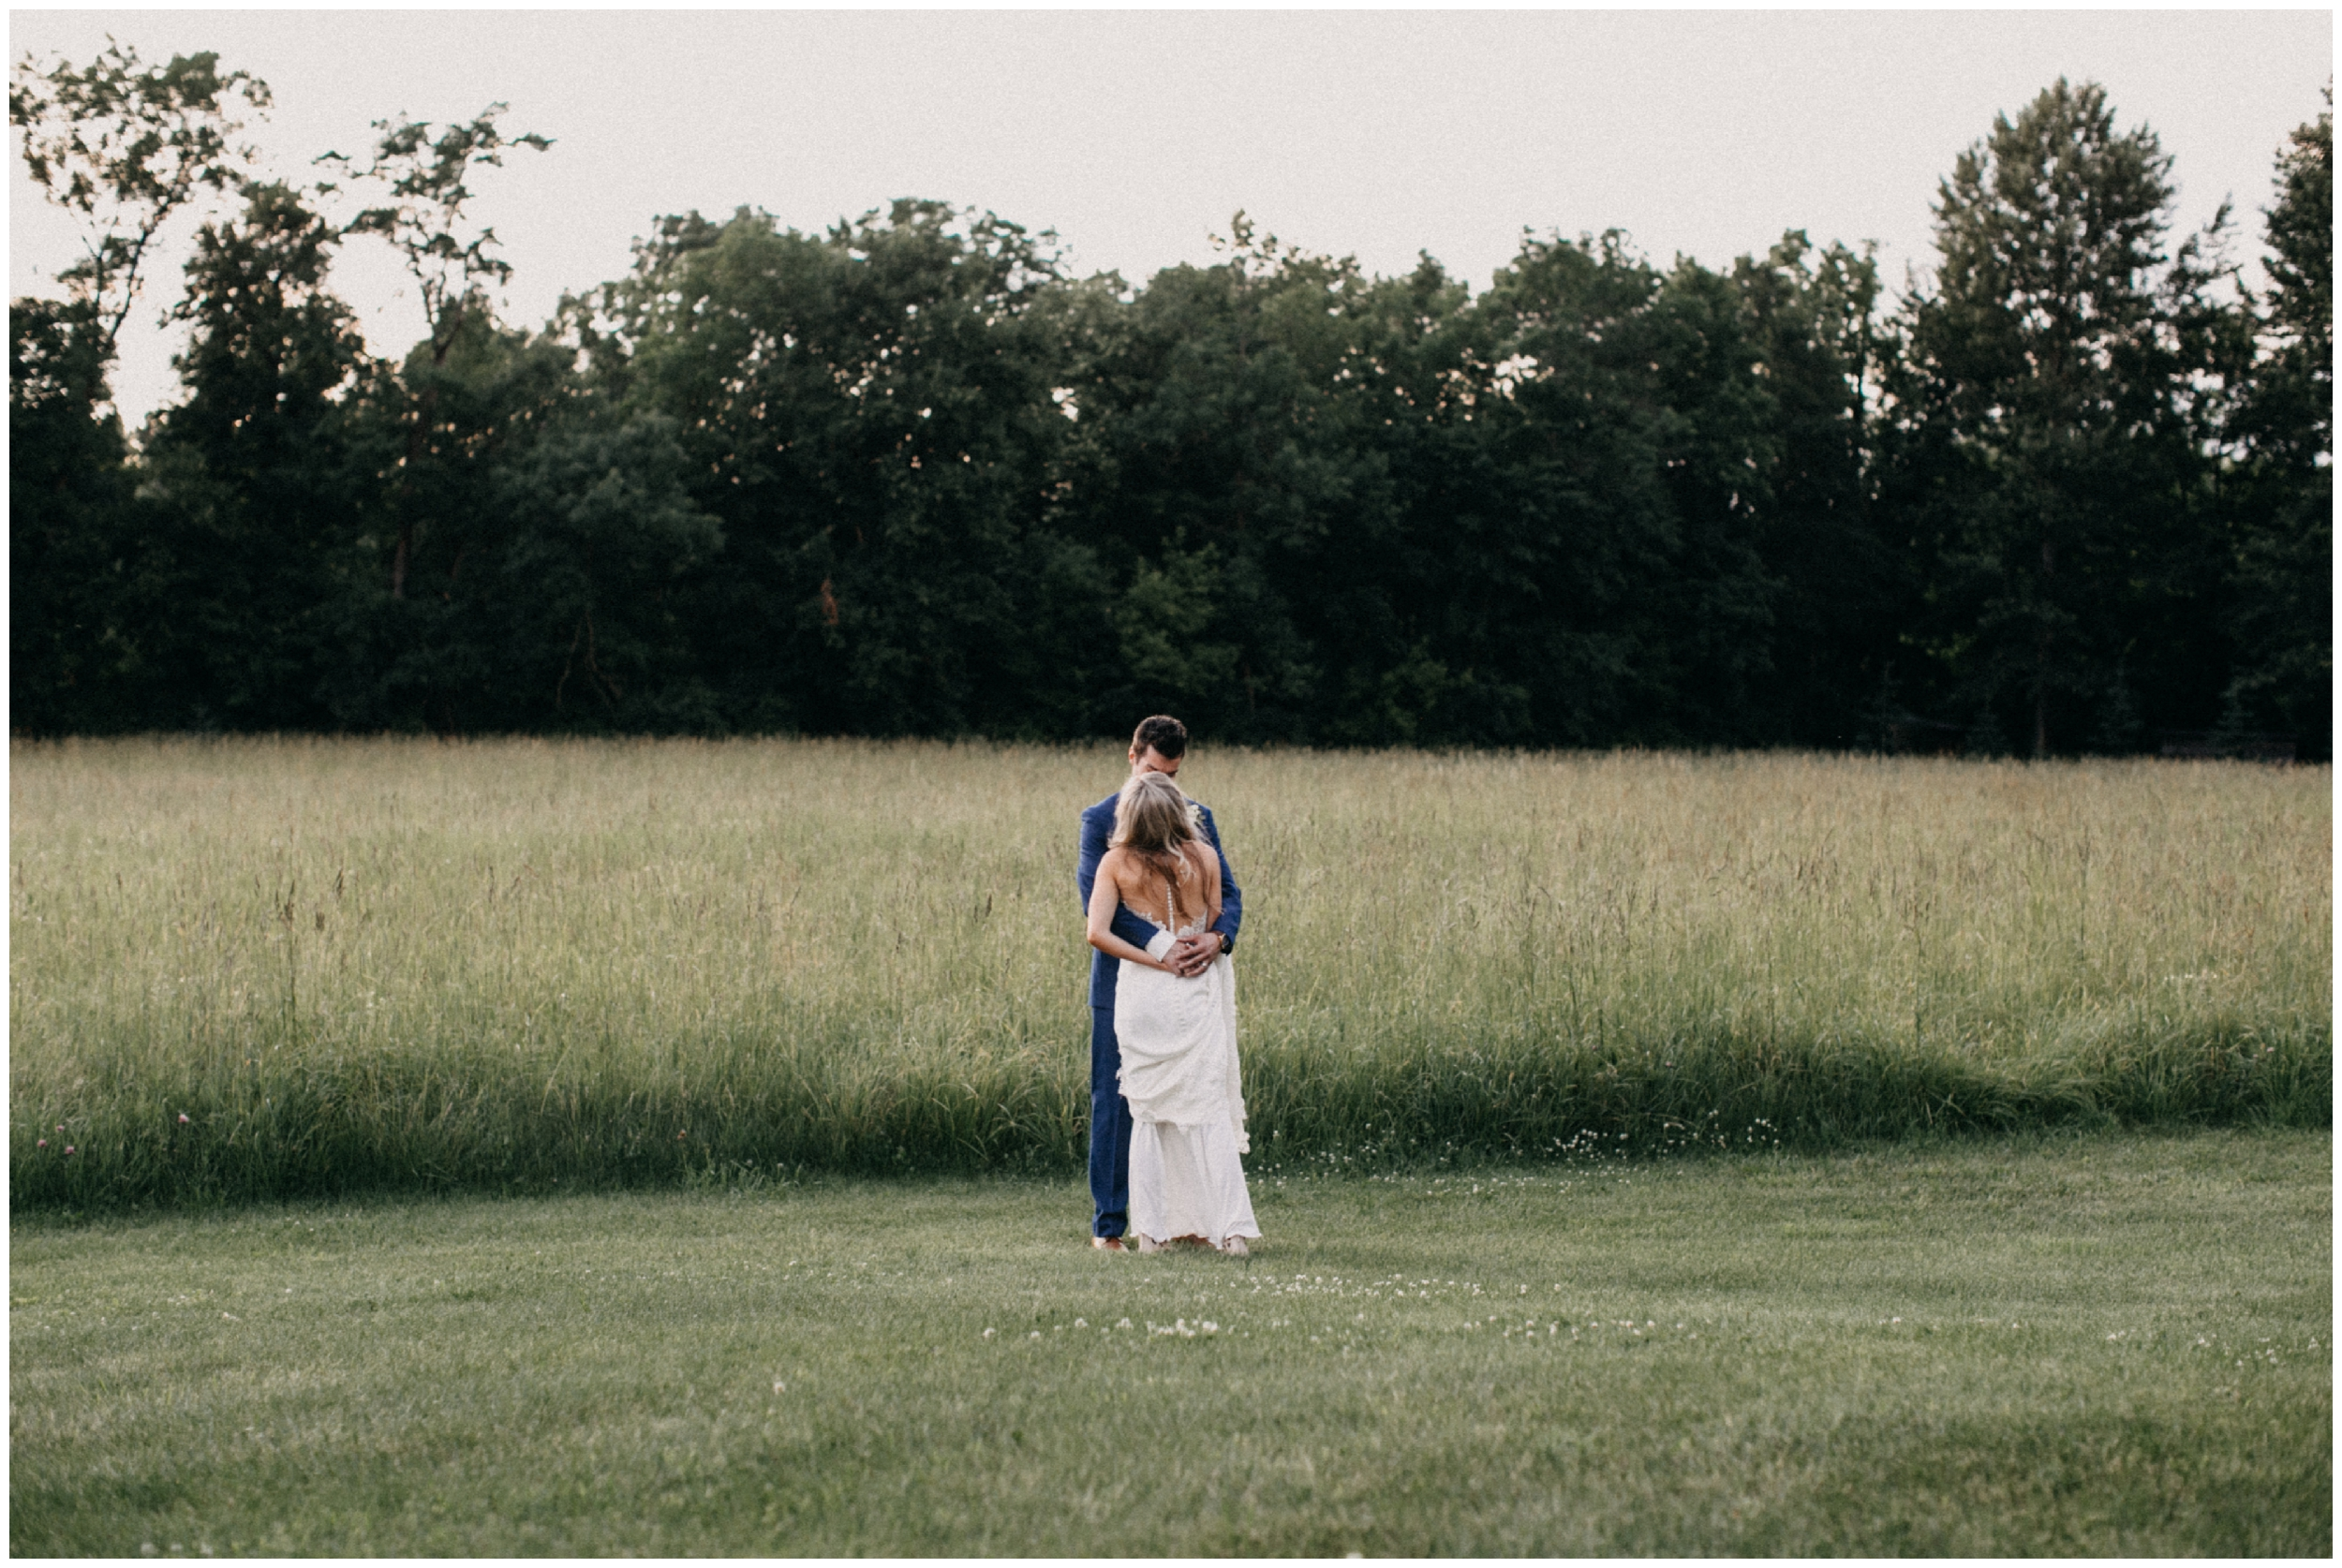 Romantic summer wedding at Creekside Farm